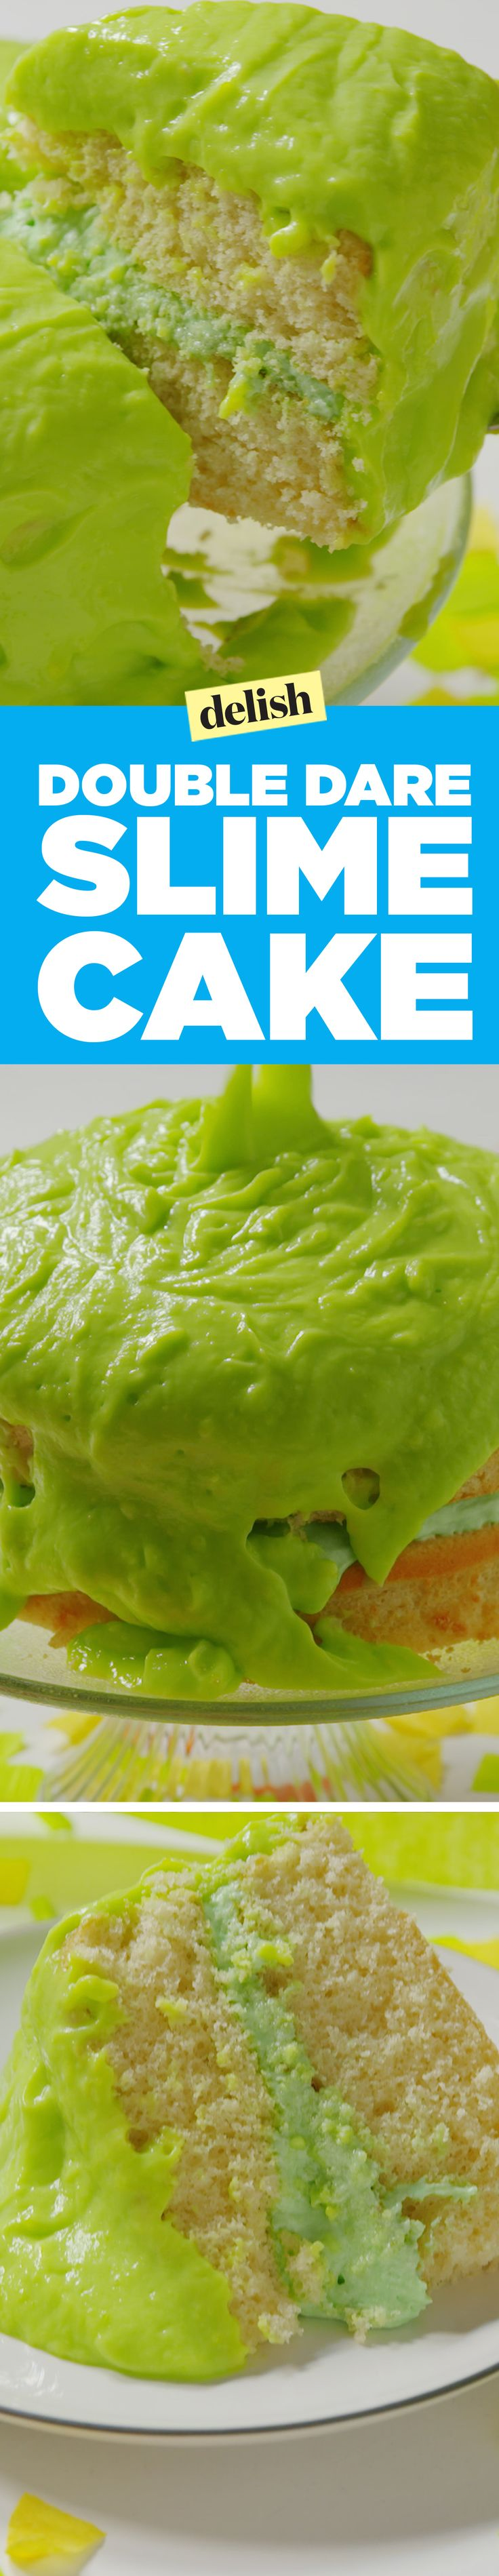 This double dare slime cake is the only way to celebrate the return of your favorite '90s show. Get the recipe on Delish.com.